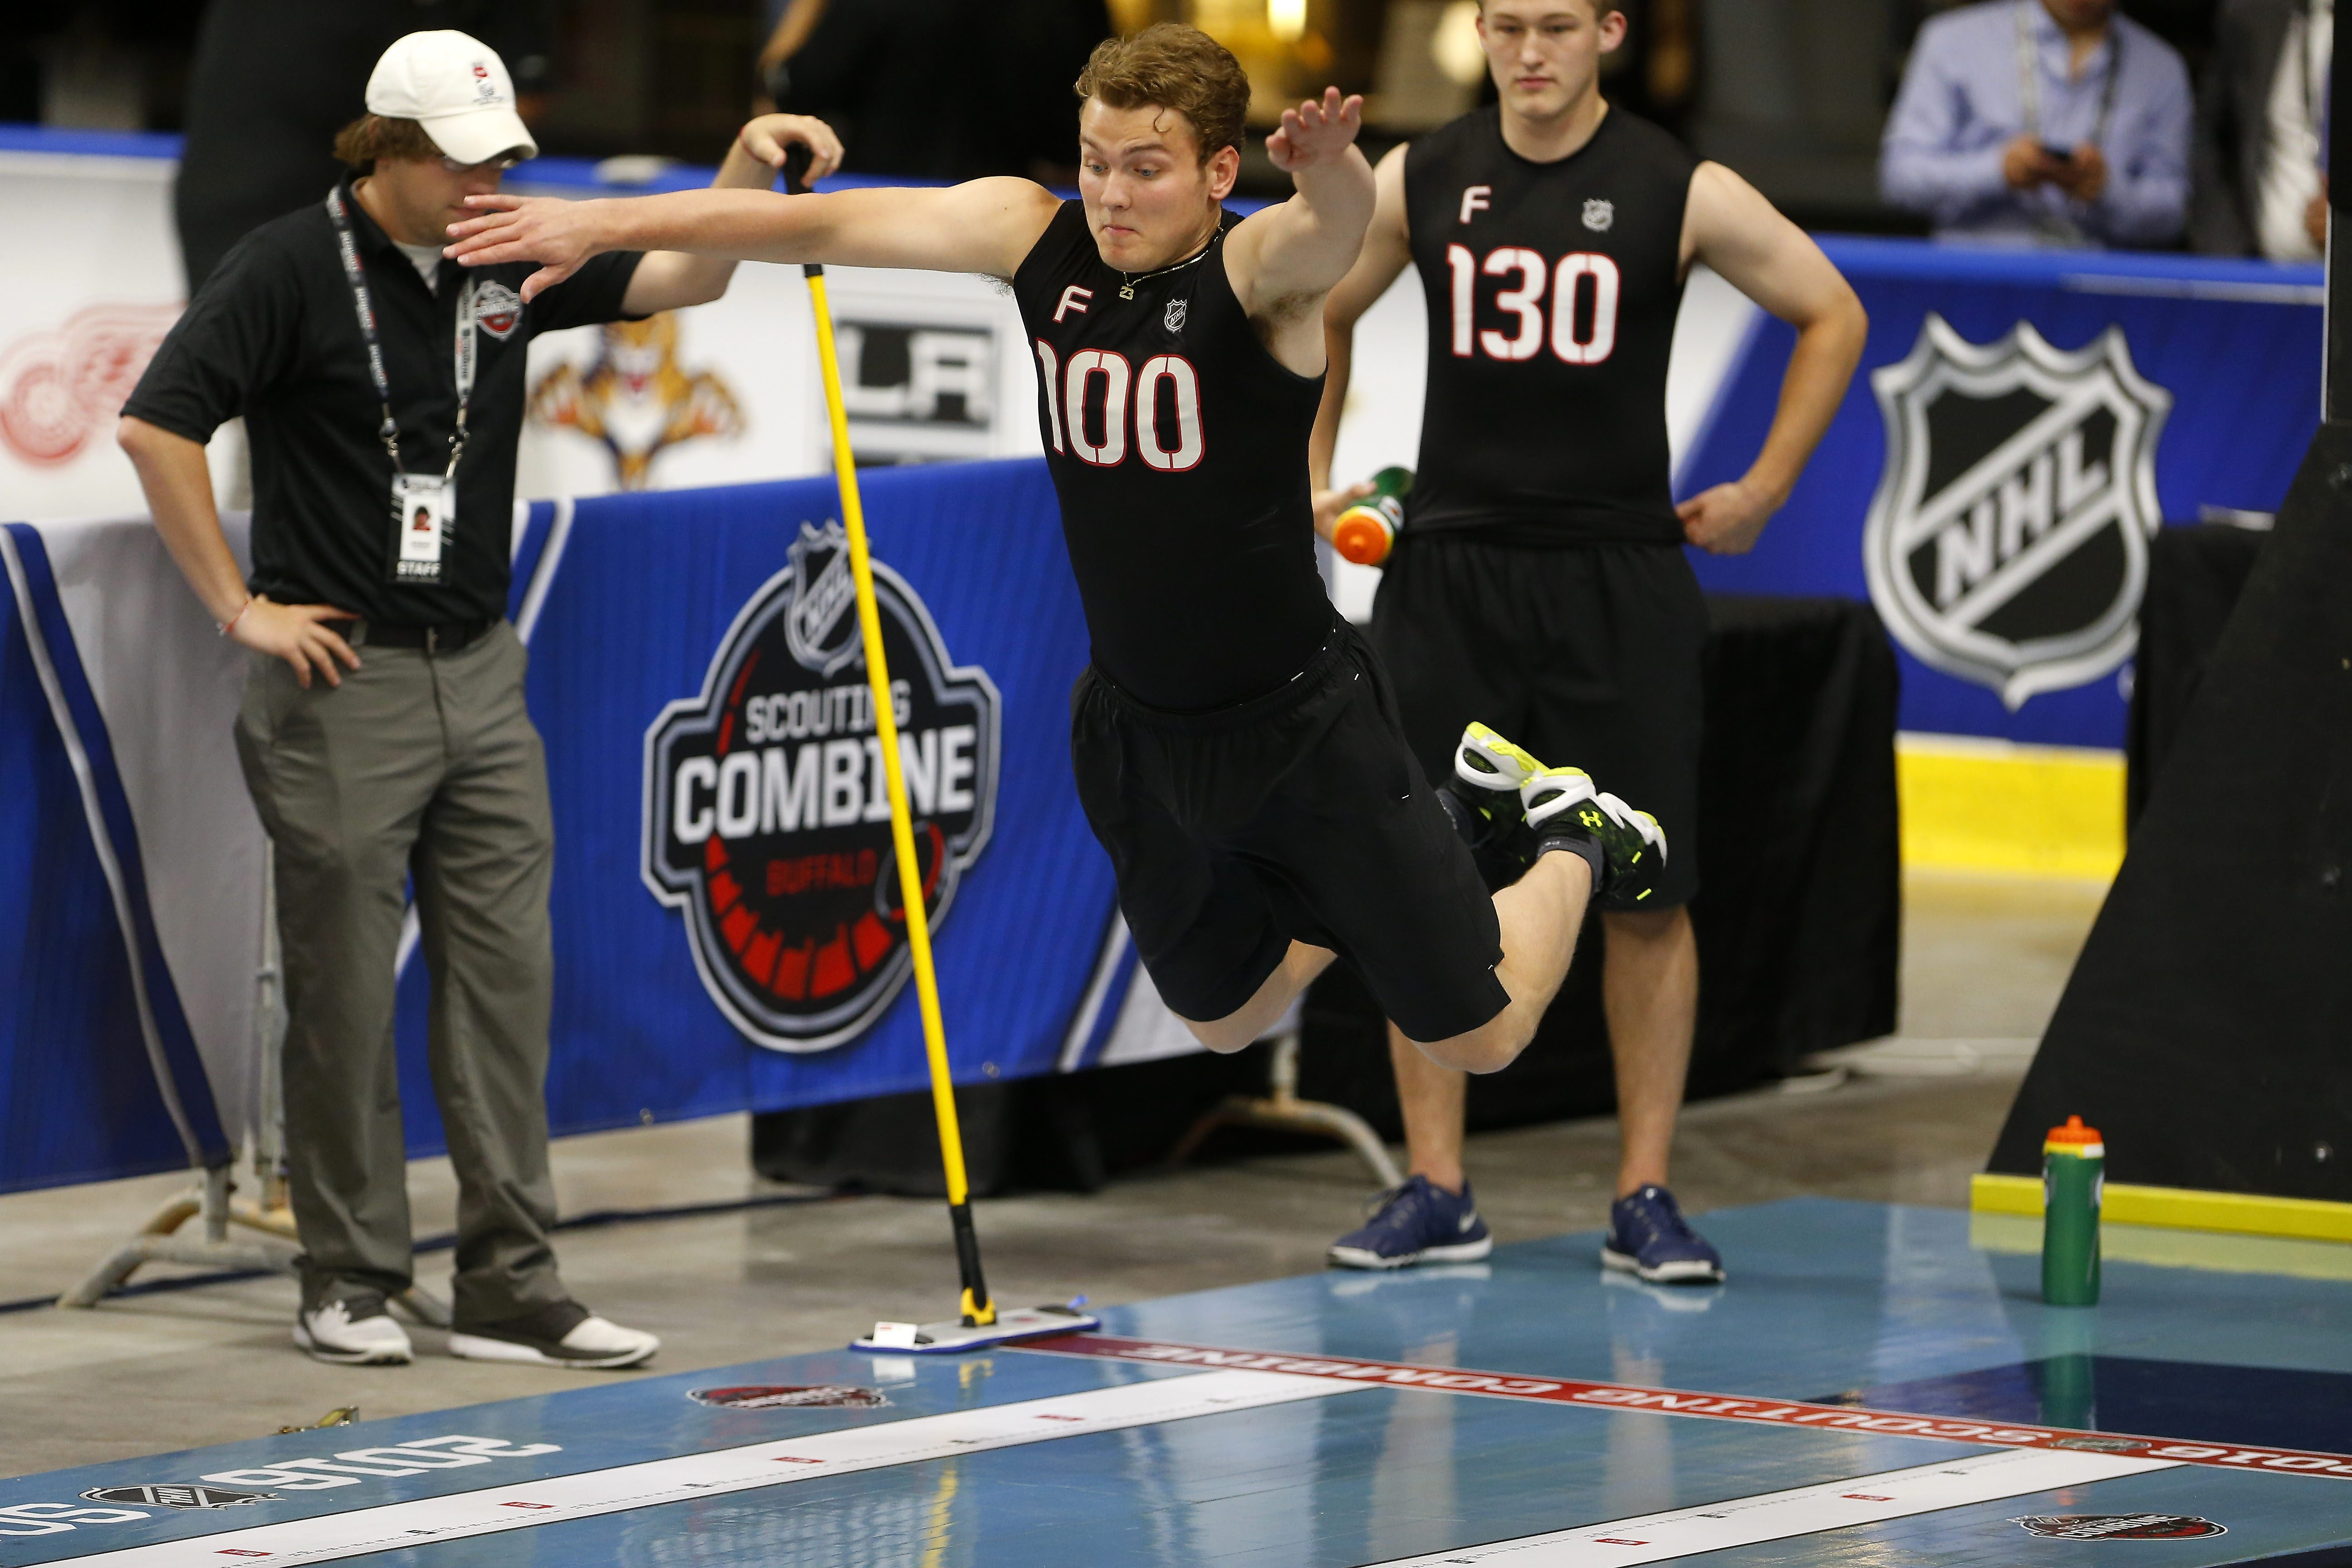 More than 100 prospects, including Kieffer Bellows in 2016, spend a week in Buffalo during the NHL Scouting Combine. (Mark Mulville/Buffalo News file photo)